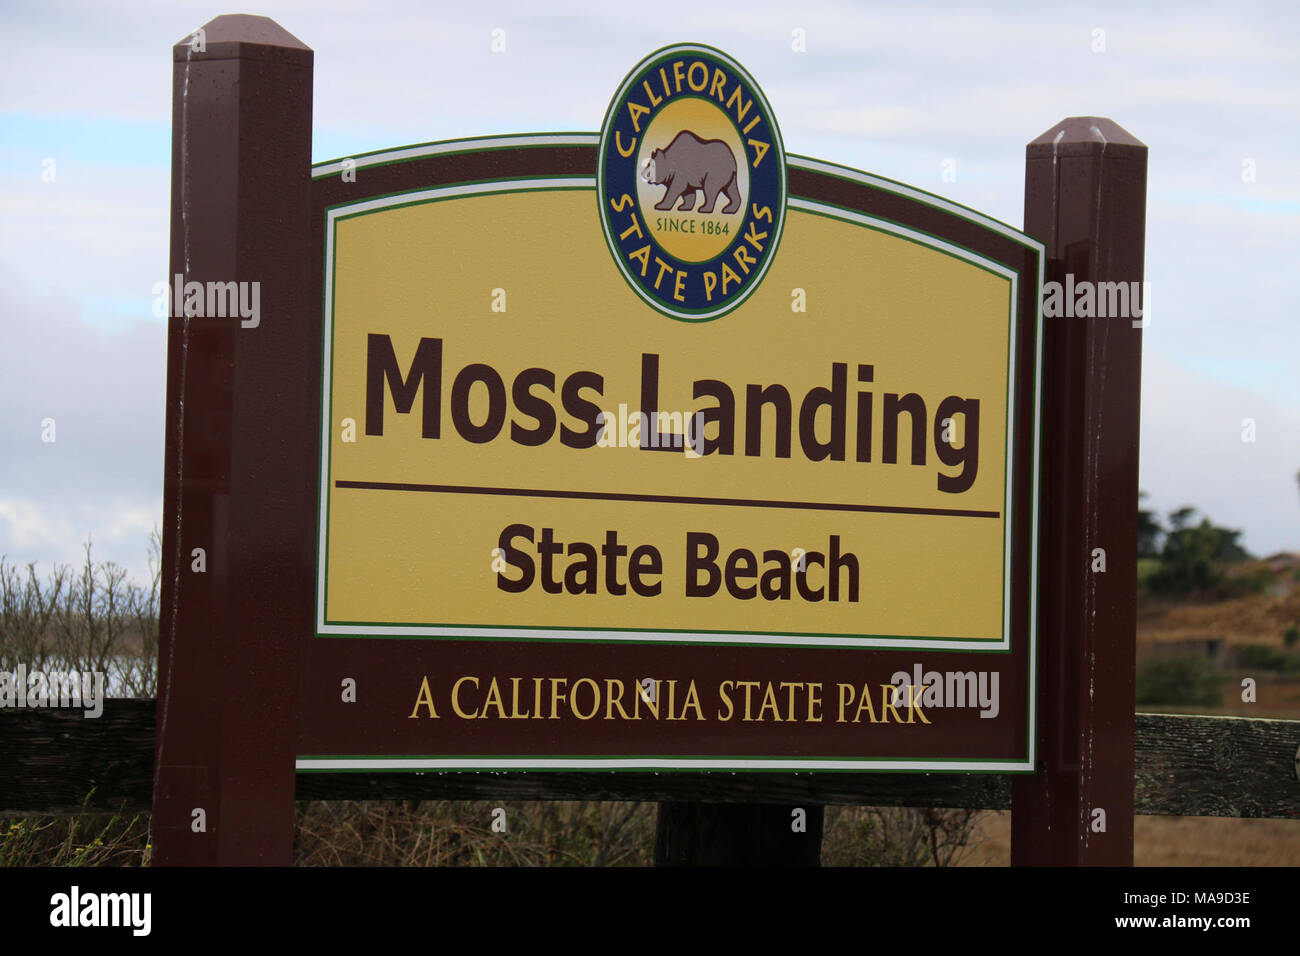 Moss Landing State Beach. Sea otters can frequently be found off the shores of Moss Landing State Beach. Stock Photo